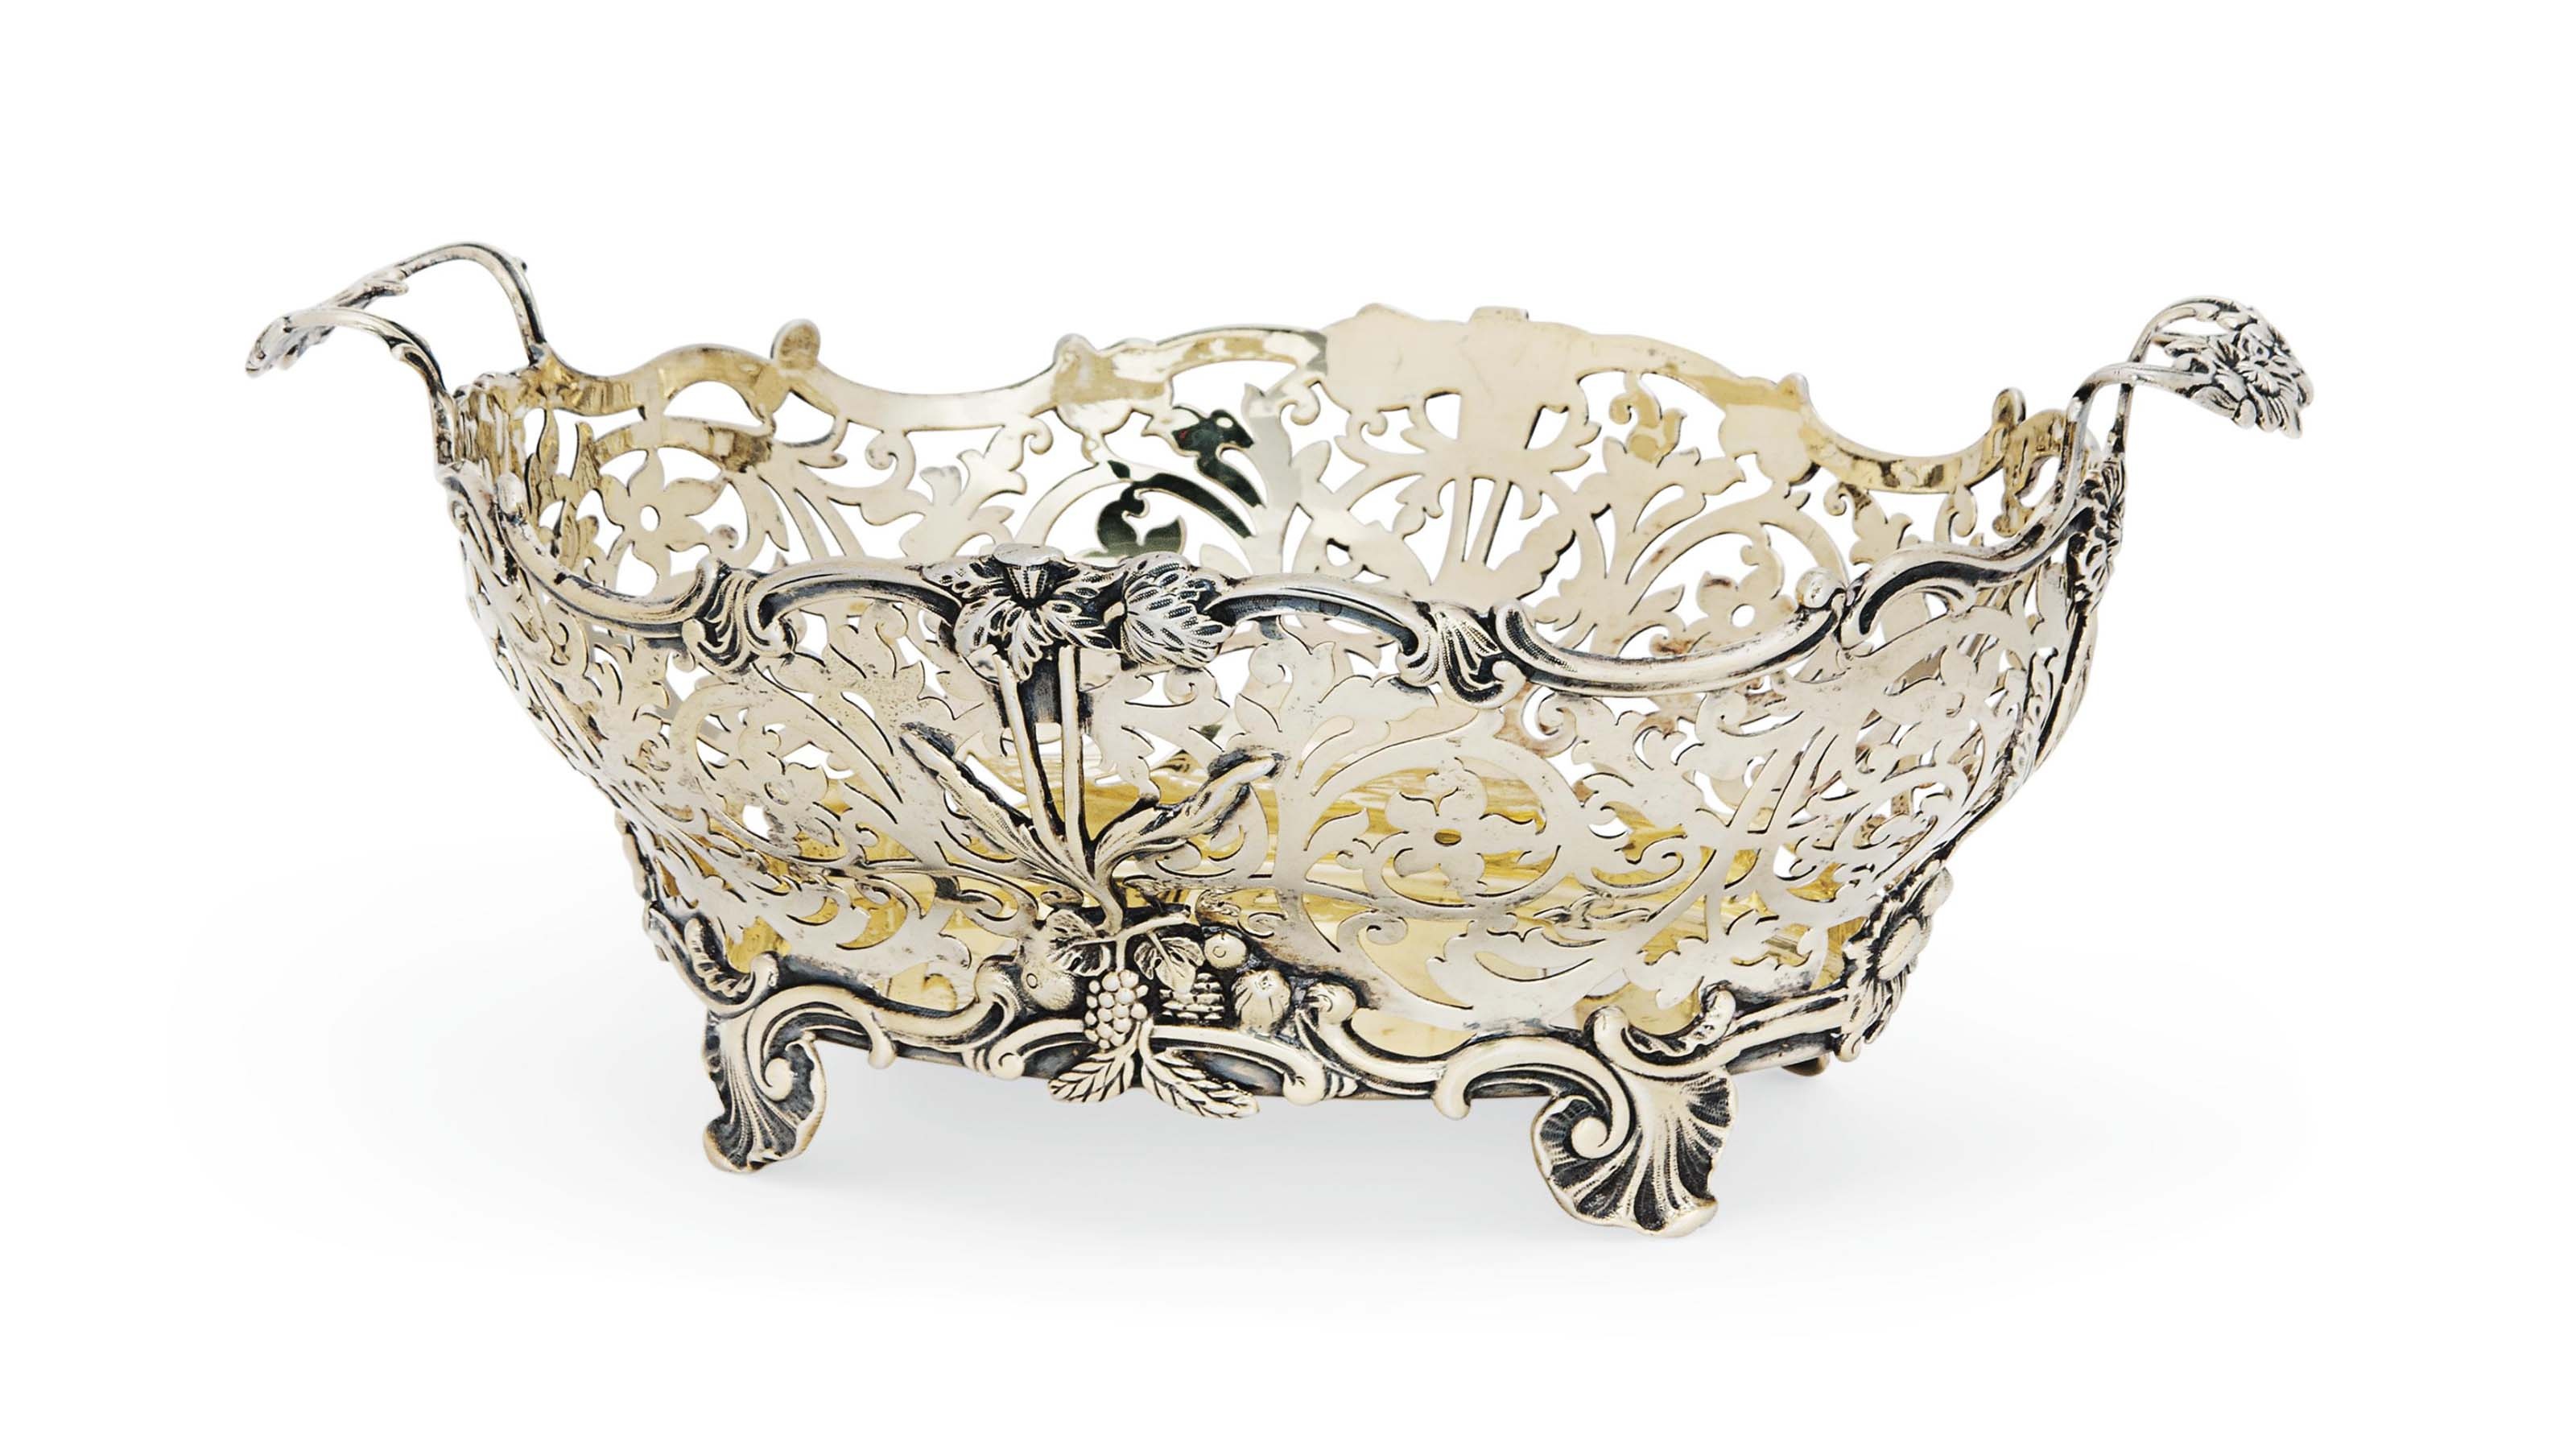 A LATE VICTORIAN SILVER-GILT TWO-HANDLED FRUIT BASKET